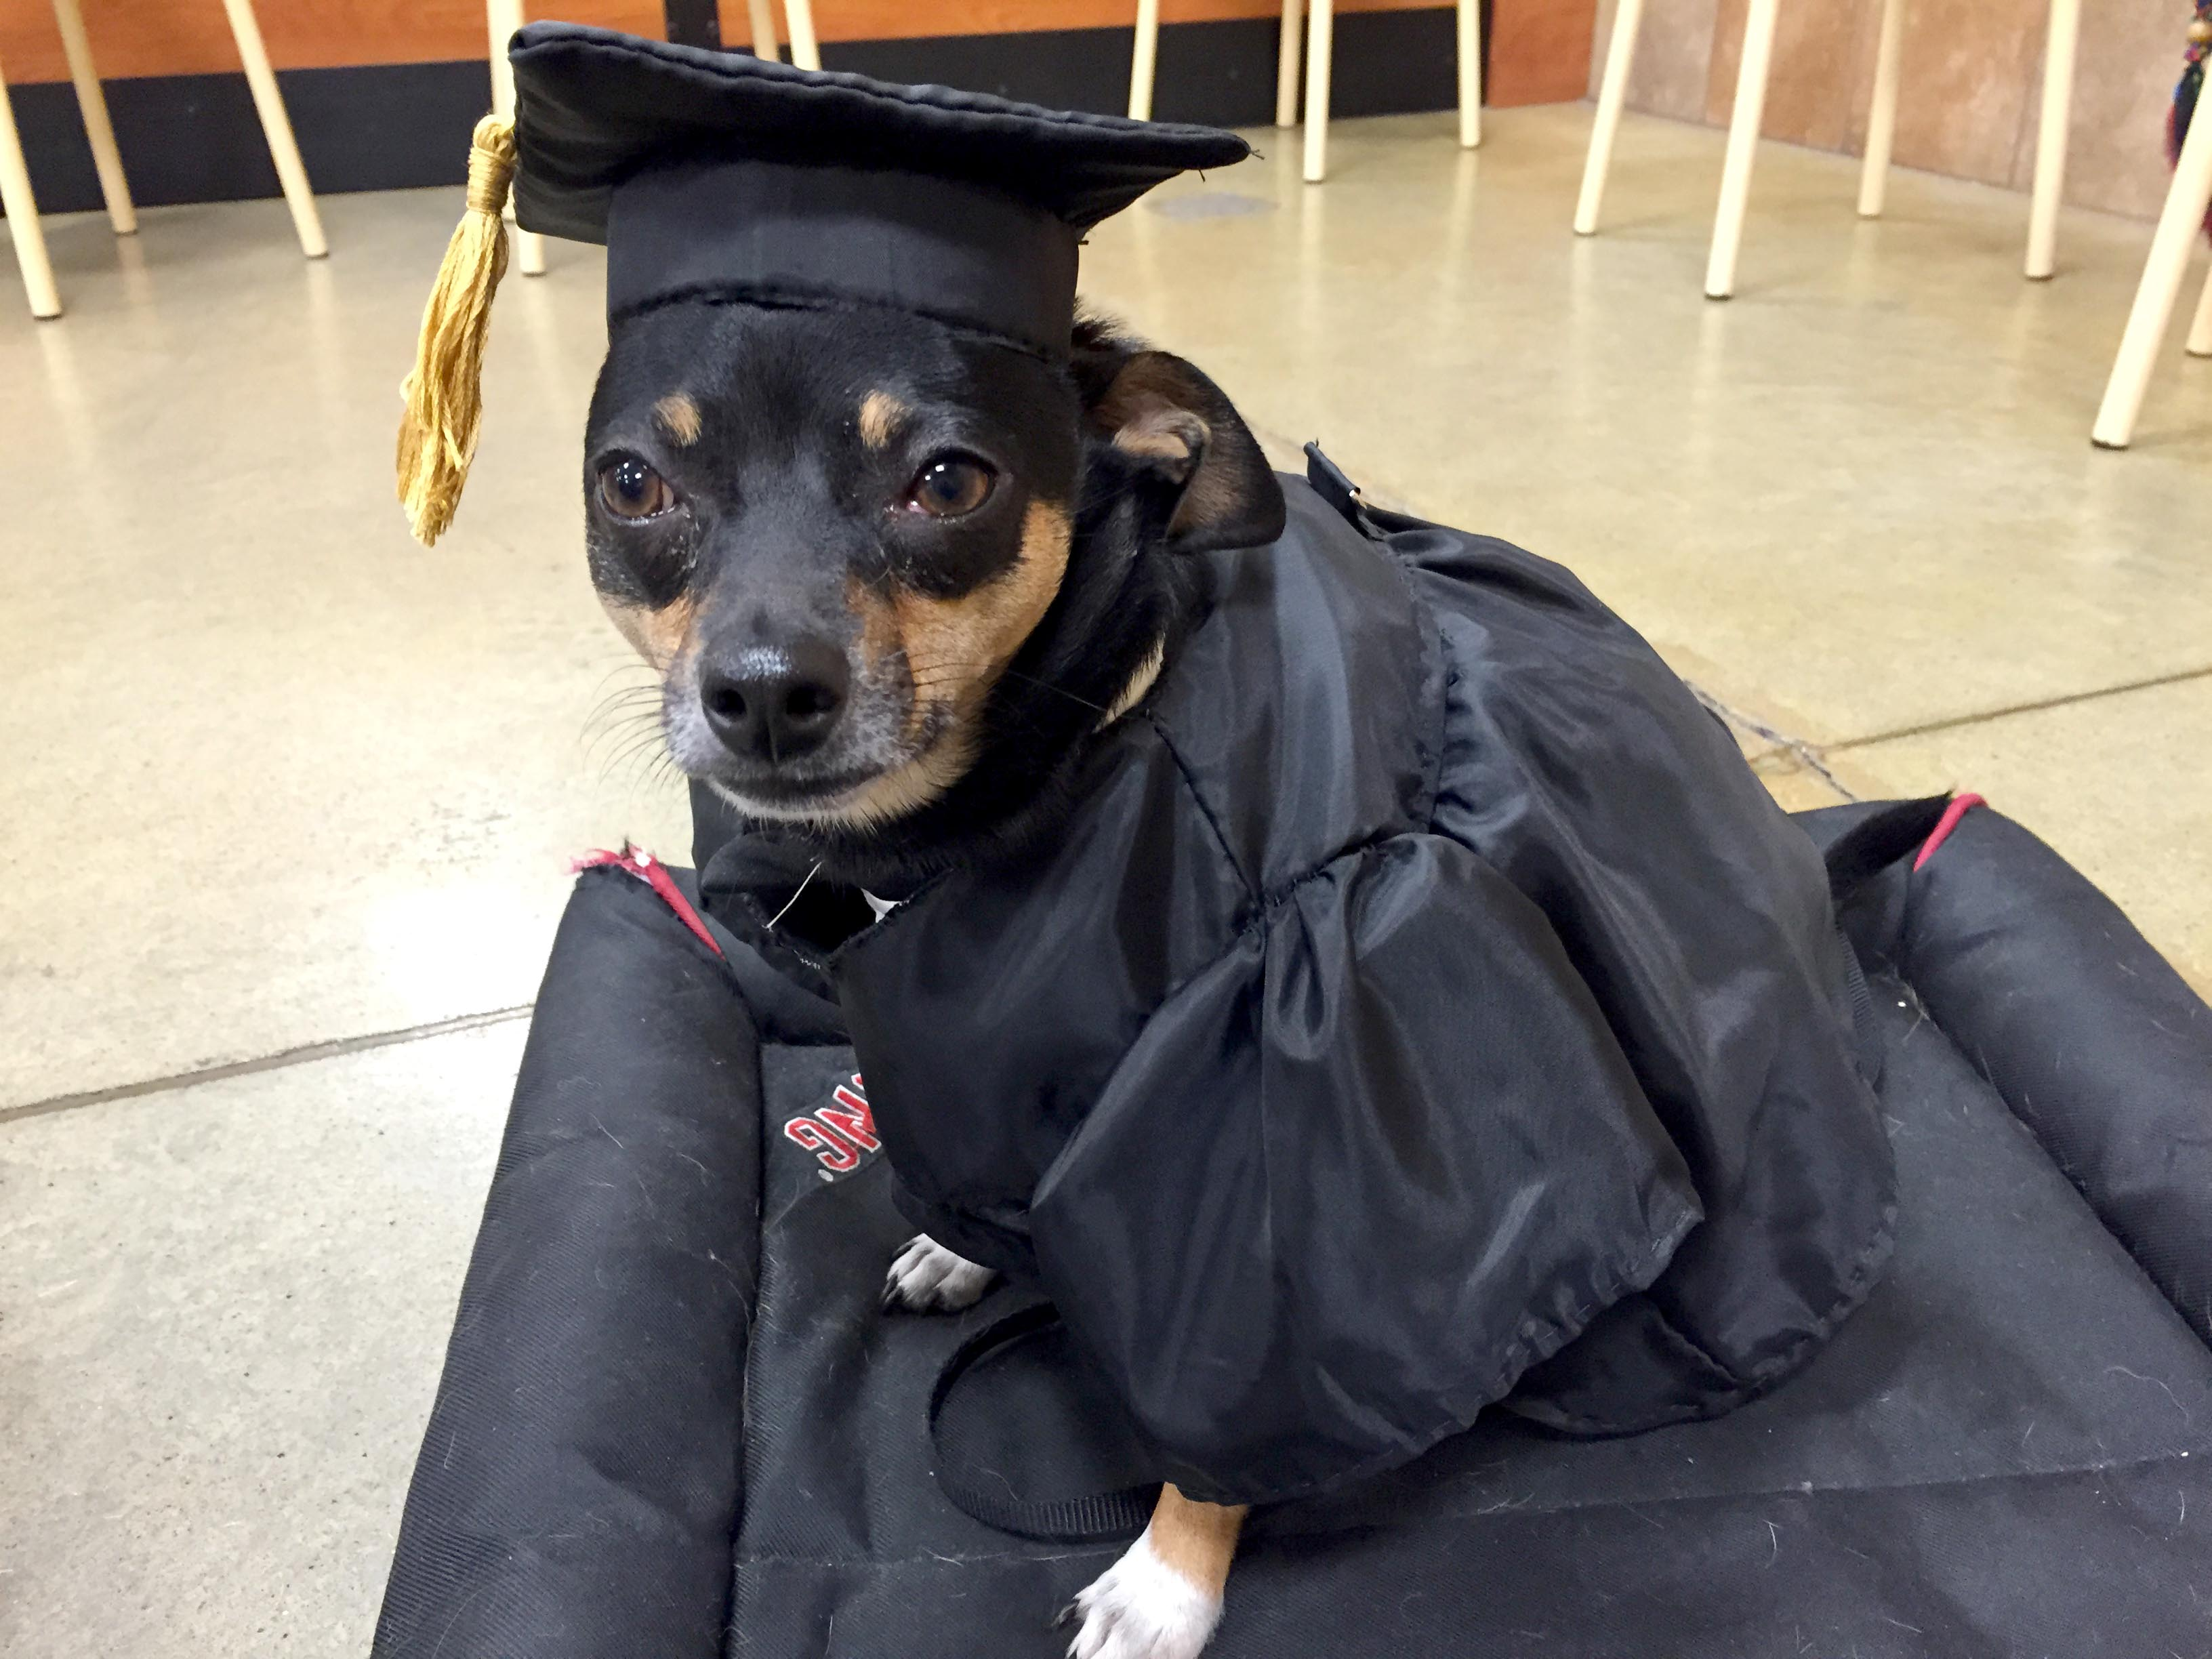 Dog Graduation Cap And Gown - Famous Dog 2018